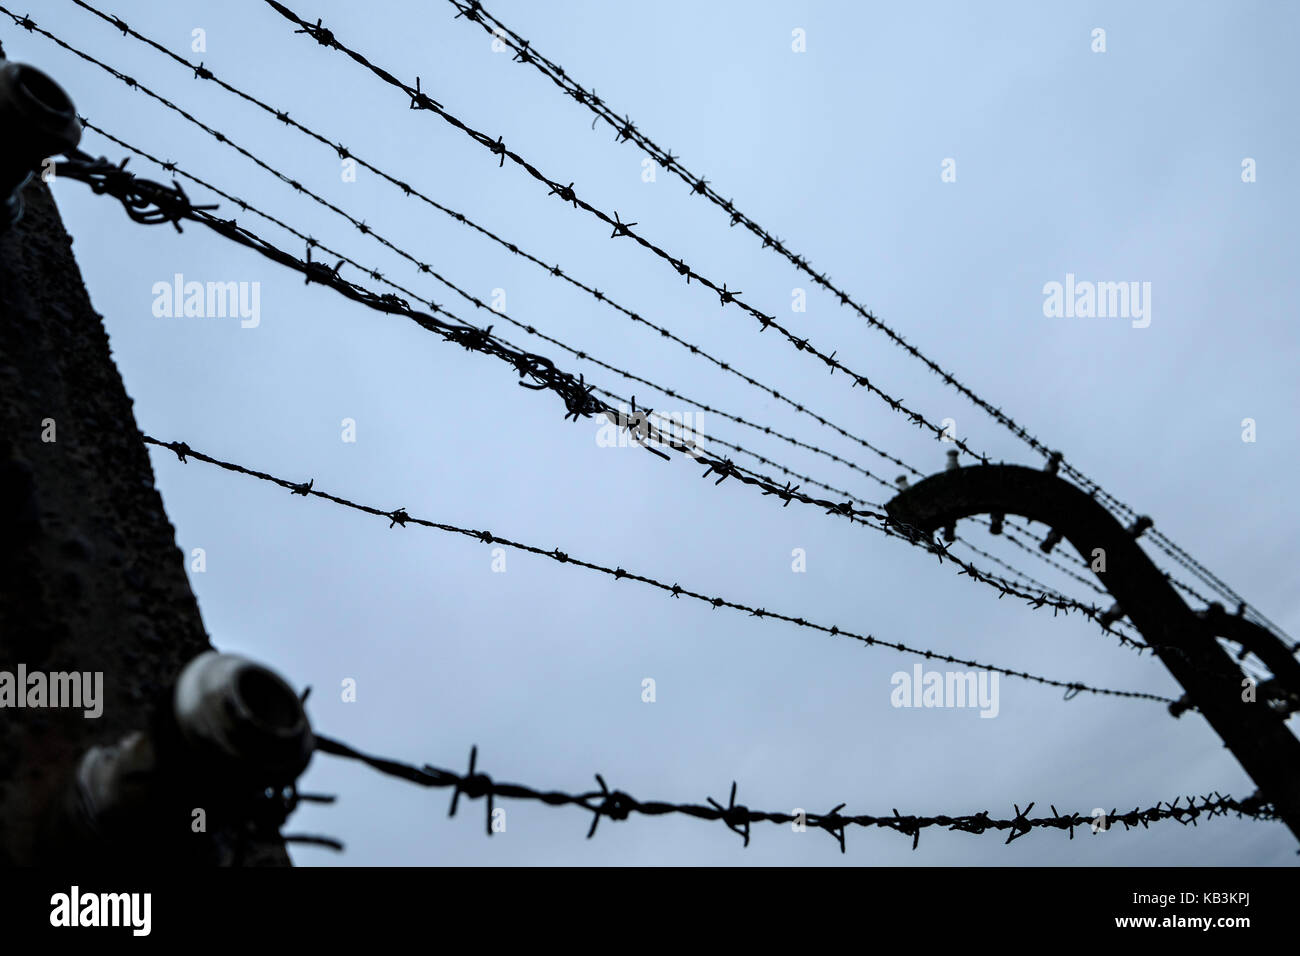 Barbwire fences in Auschwitz II Birkenau concentration camp, Poland - Stock Image